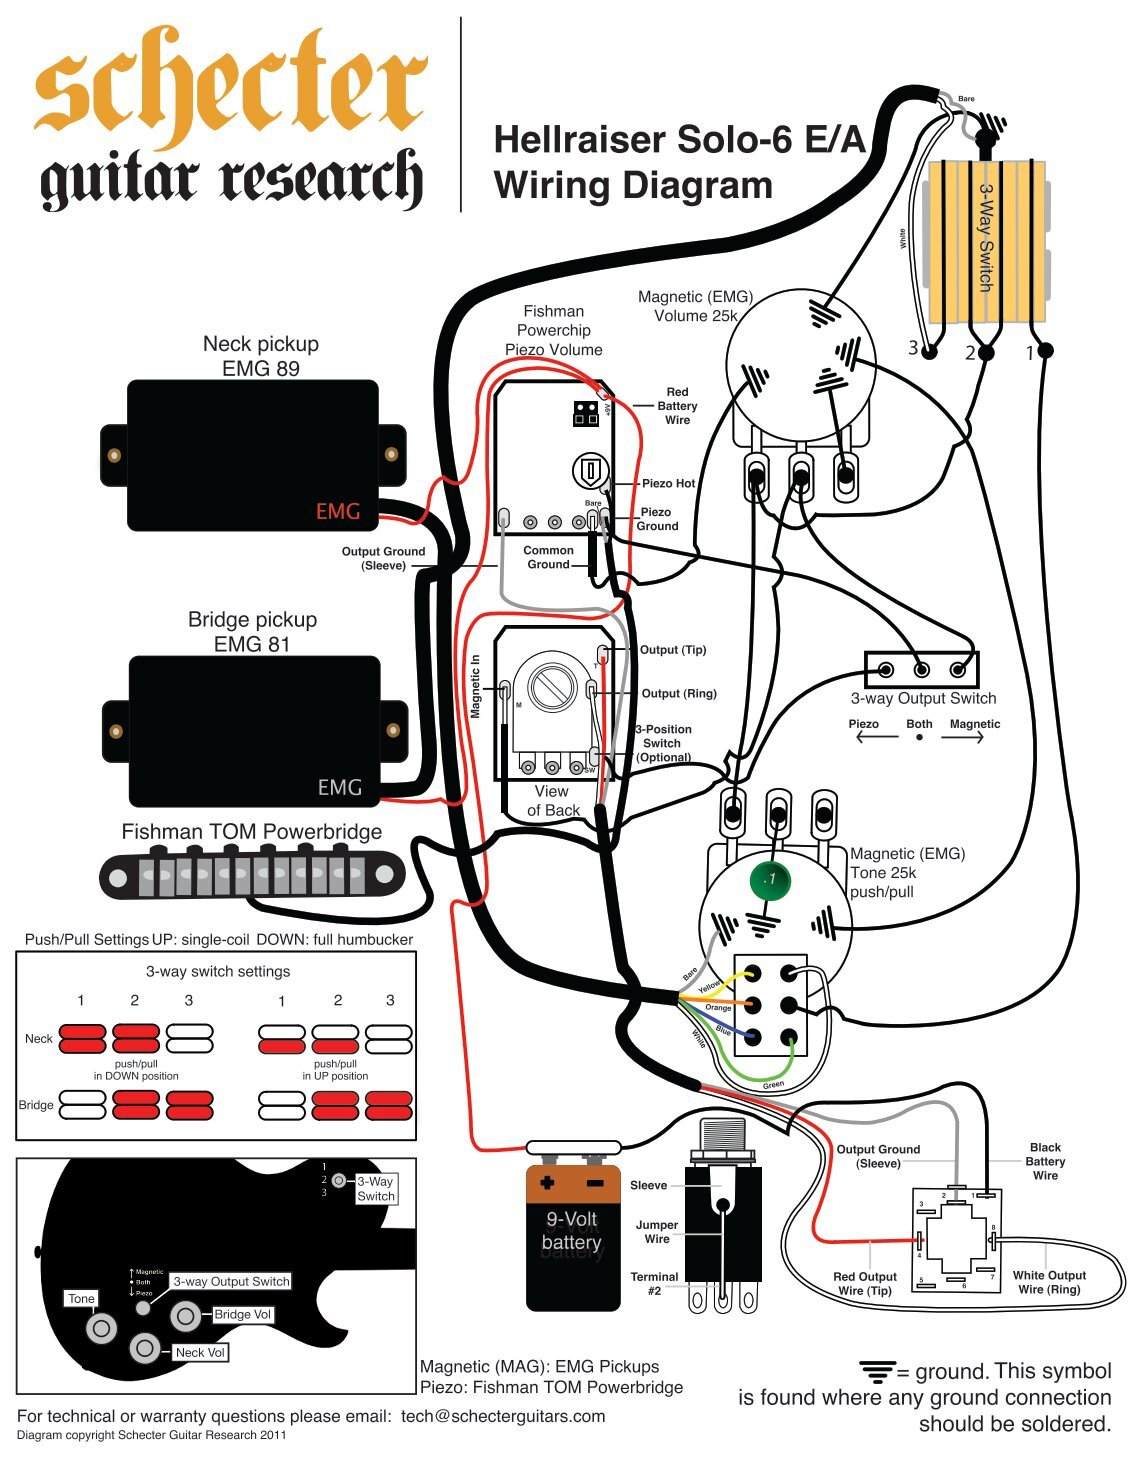 hellraiser solo 6 wiring diagram schecter guitars?qualityd80 schecter wiring diagram schecter diamond series c 1 wiring Schecter Solo 6 Guitar at fashall.co